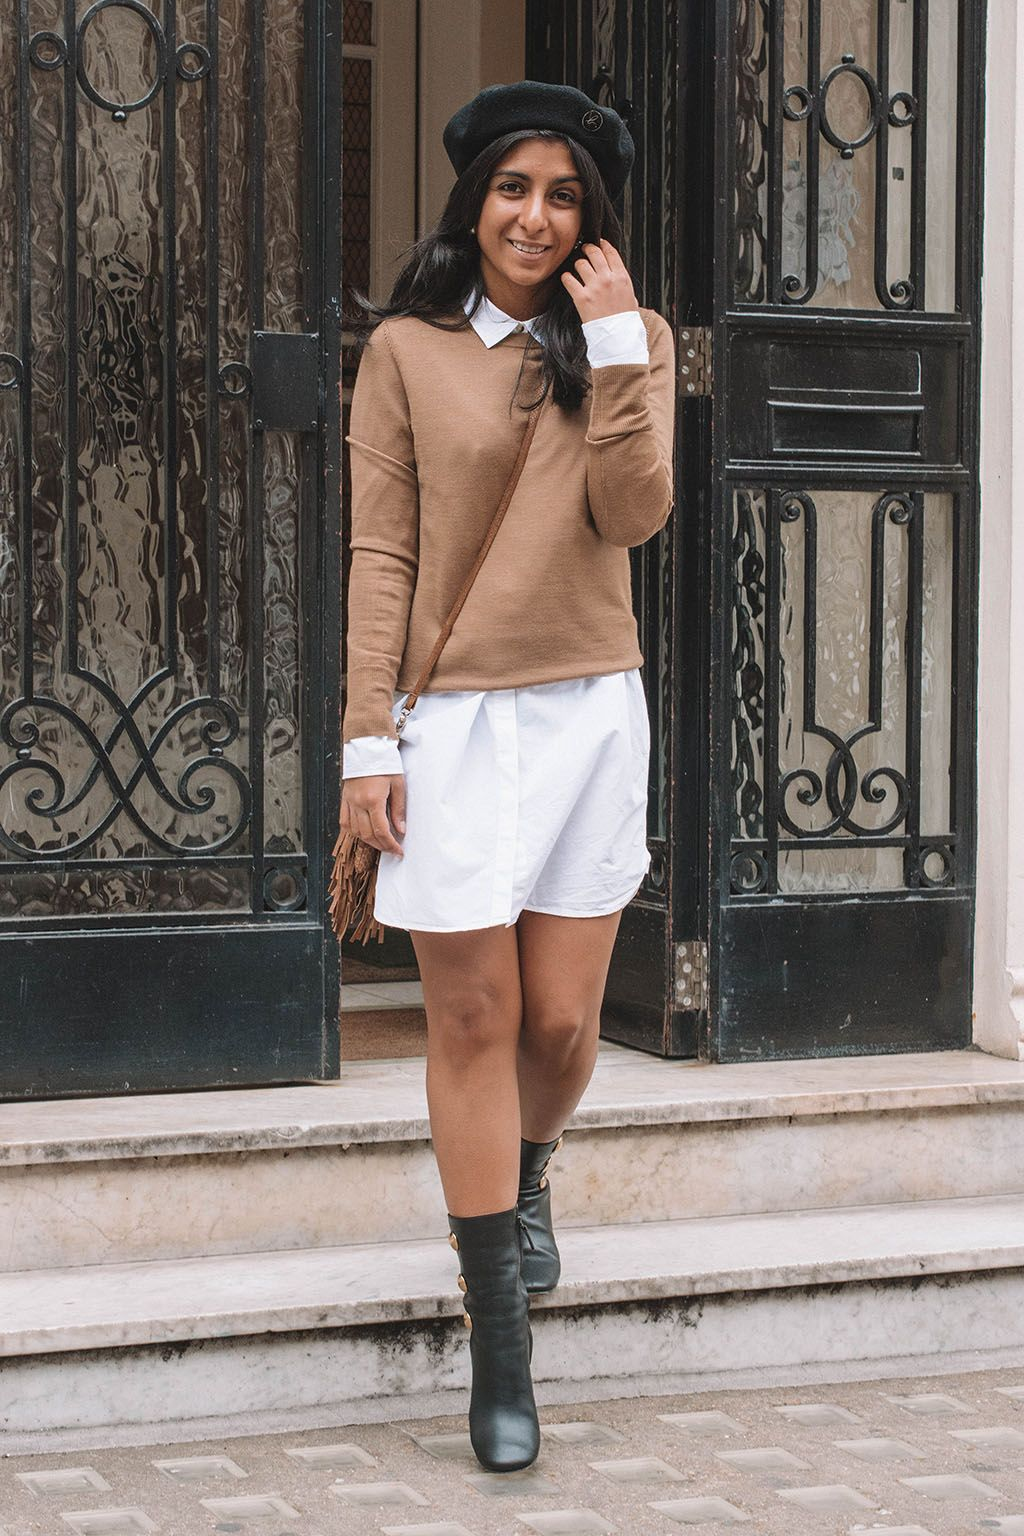 f9720a947 Fashion blogger Shloka Narang of The Silk Sneaker shares a fashionable way  to wear your favourite white shirt dress in the autumn with this  transitional ...